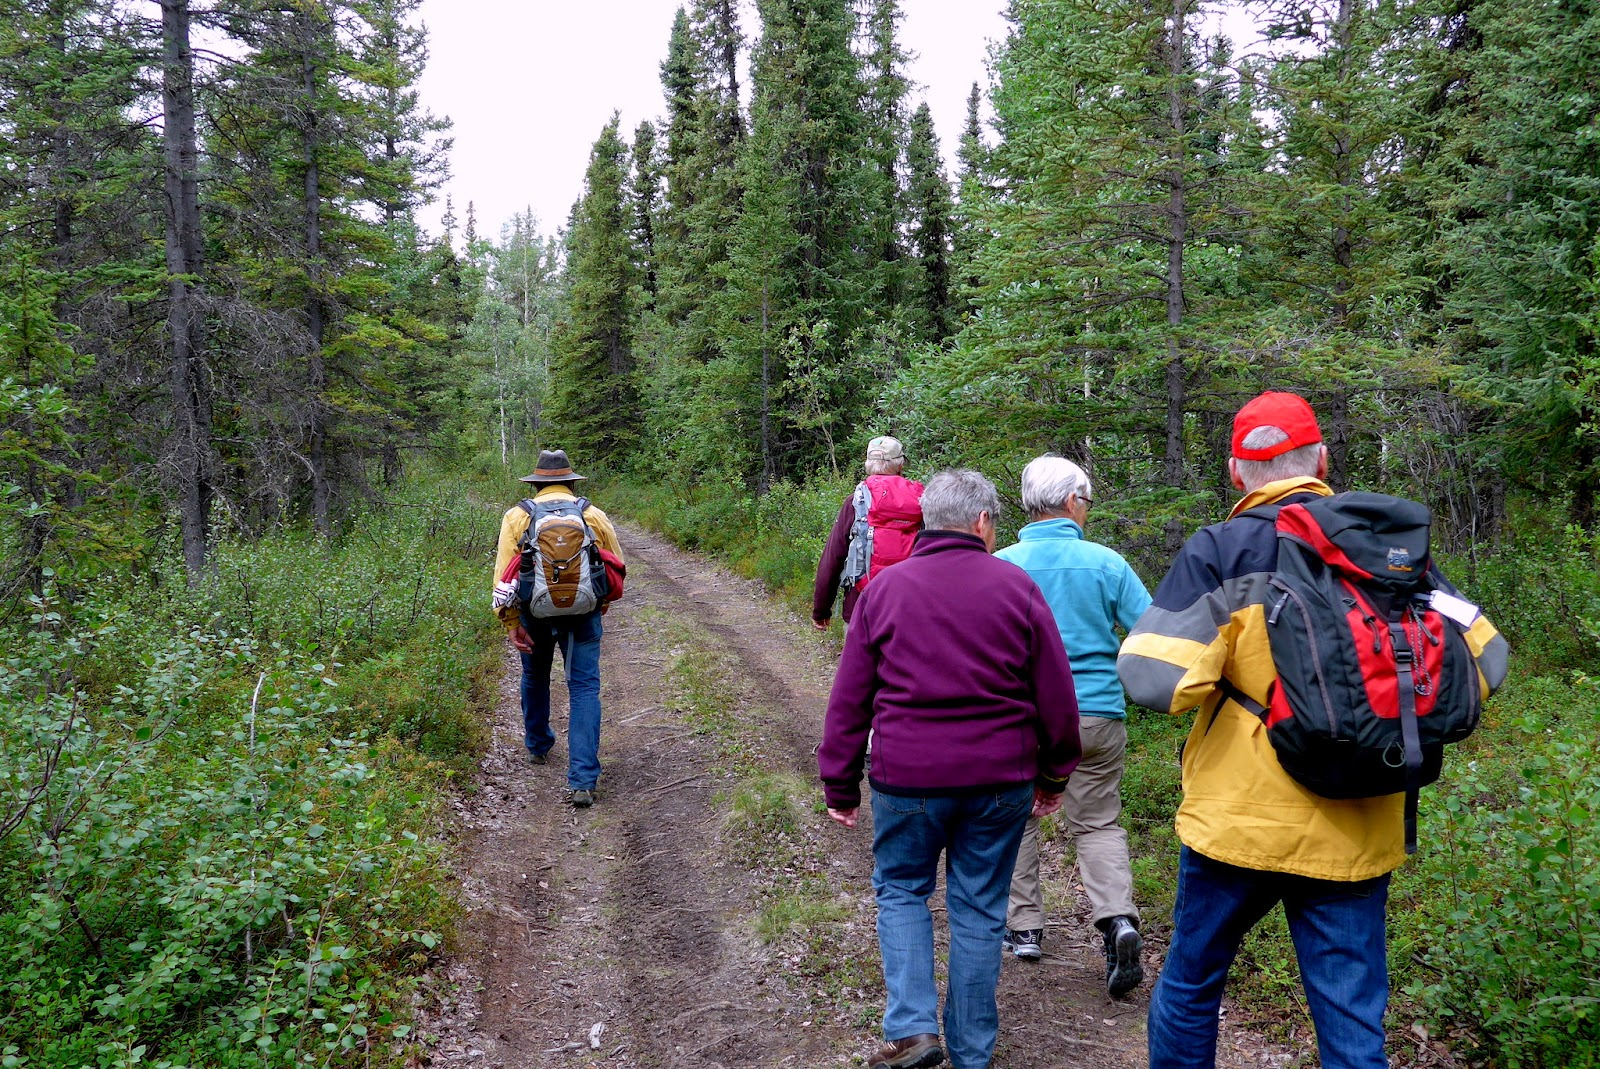 We are off on our hike in Wrangell - St. Elias National Park Preserve